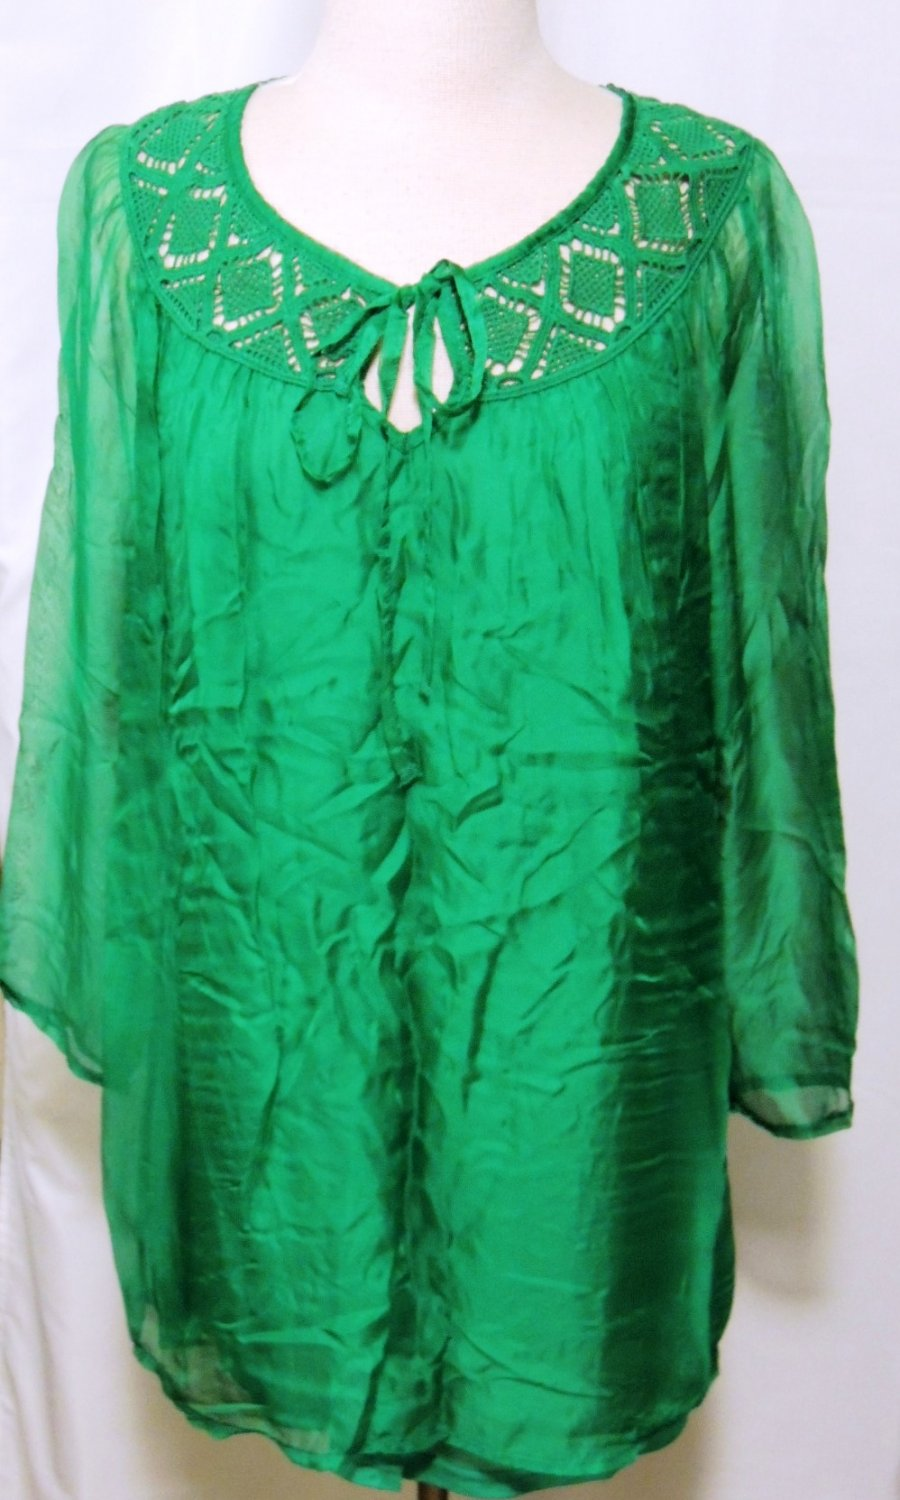 MIILLA GREEN EMBROIDERED TUNIC TOP SIZE SM, LG